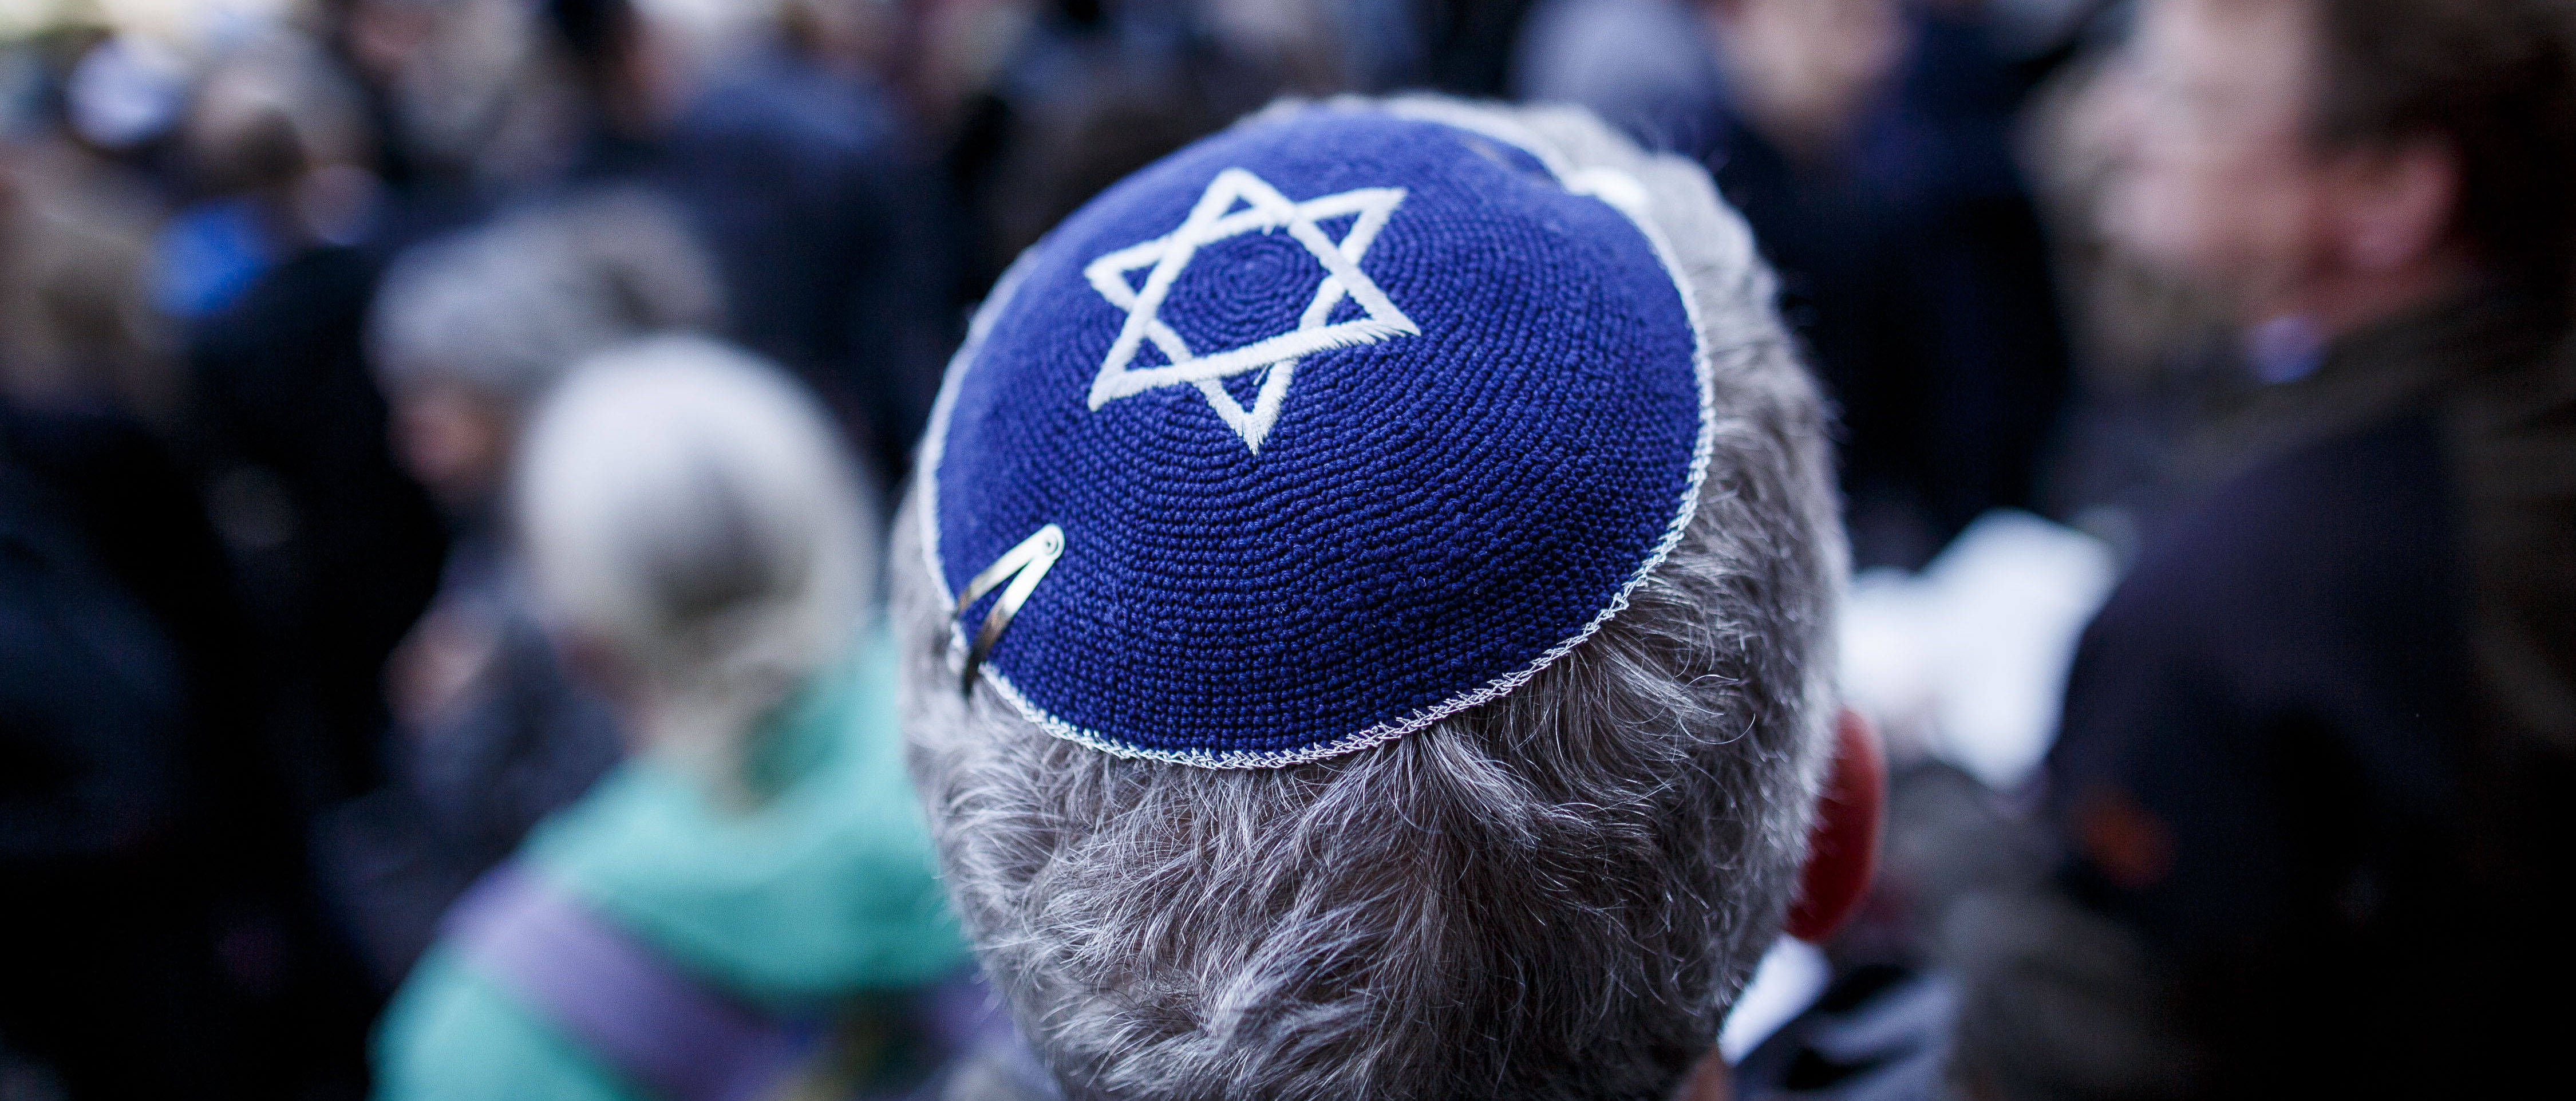 """BERLIN, GERMANY - APRIL 25: A participant wears a kippah during a """"wear a kippah"""" gathering to protest against anti-Semitism in front of the Jewish Community House on April 25, 2018 in Berlin, Germany. The Jewish community made a public appeal for Jews and non-Jews to attend the event and wear a kippah as a show of solidarity. The effort was sparked by a recent incident in Berlin in which a Syrian Palestinian man berated and struck with his belt a man wearing a kippah. The kippah-wearer was not Jewish, but an Israeli Arab who wore the kippah curious what reaction he might receive while walking in Berlin. In 2017 Germany reportedly recorded 1453 criminal offenses related to anti-Semitism, of which 94 percent were attributed to German citizens. (Photo by Carsten Koall/Getty Images)"""